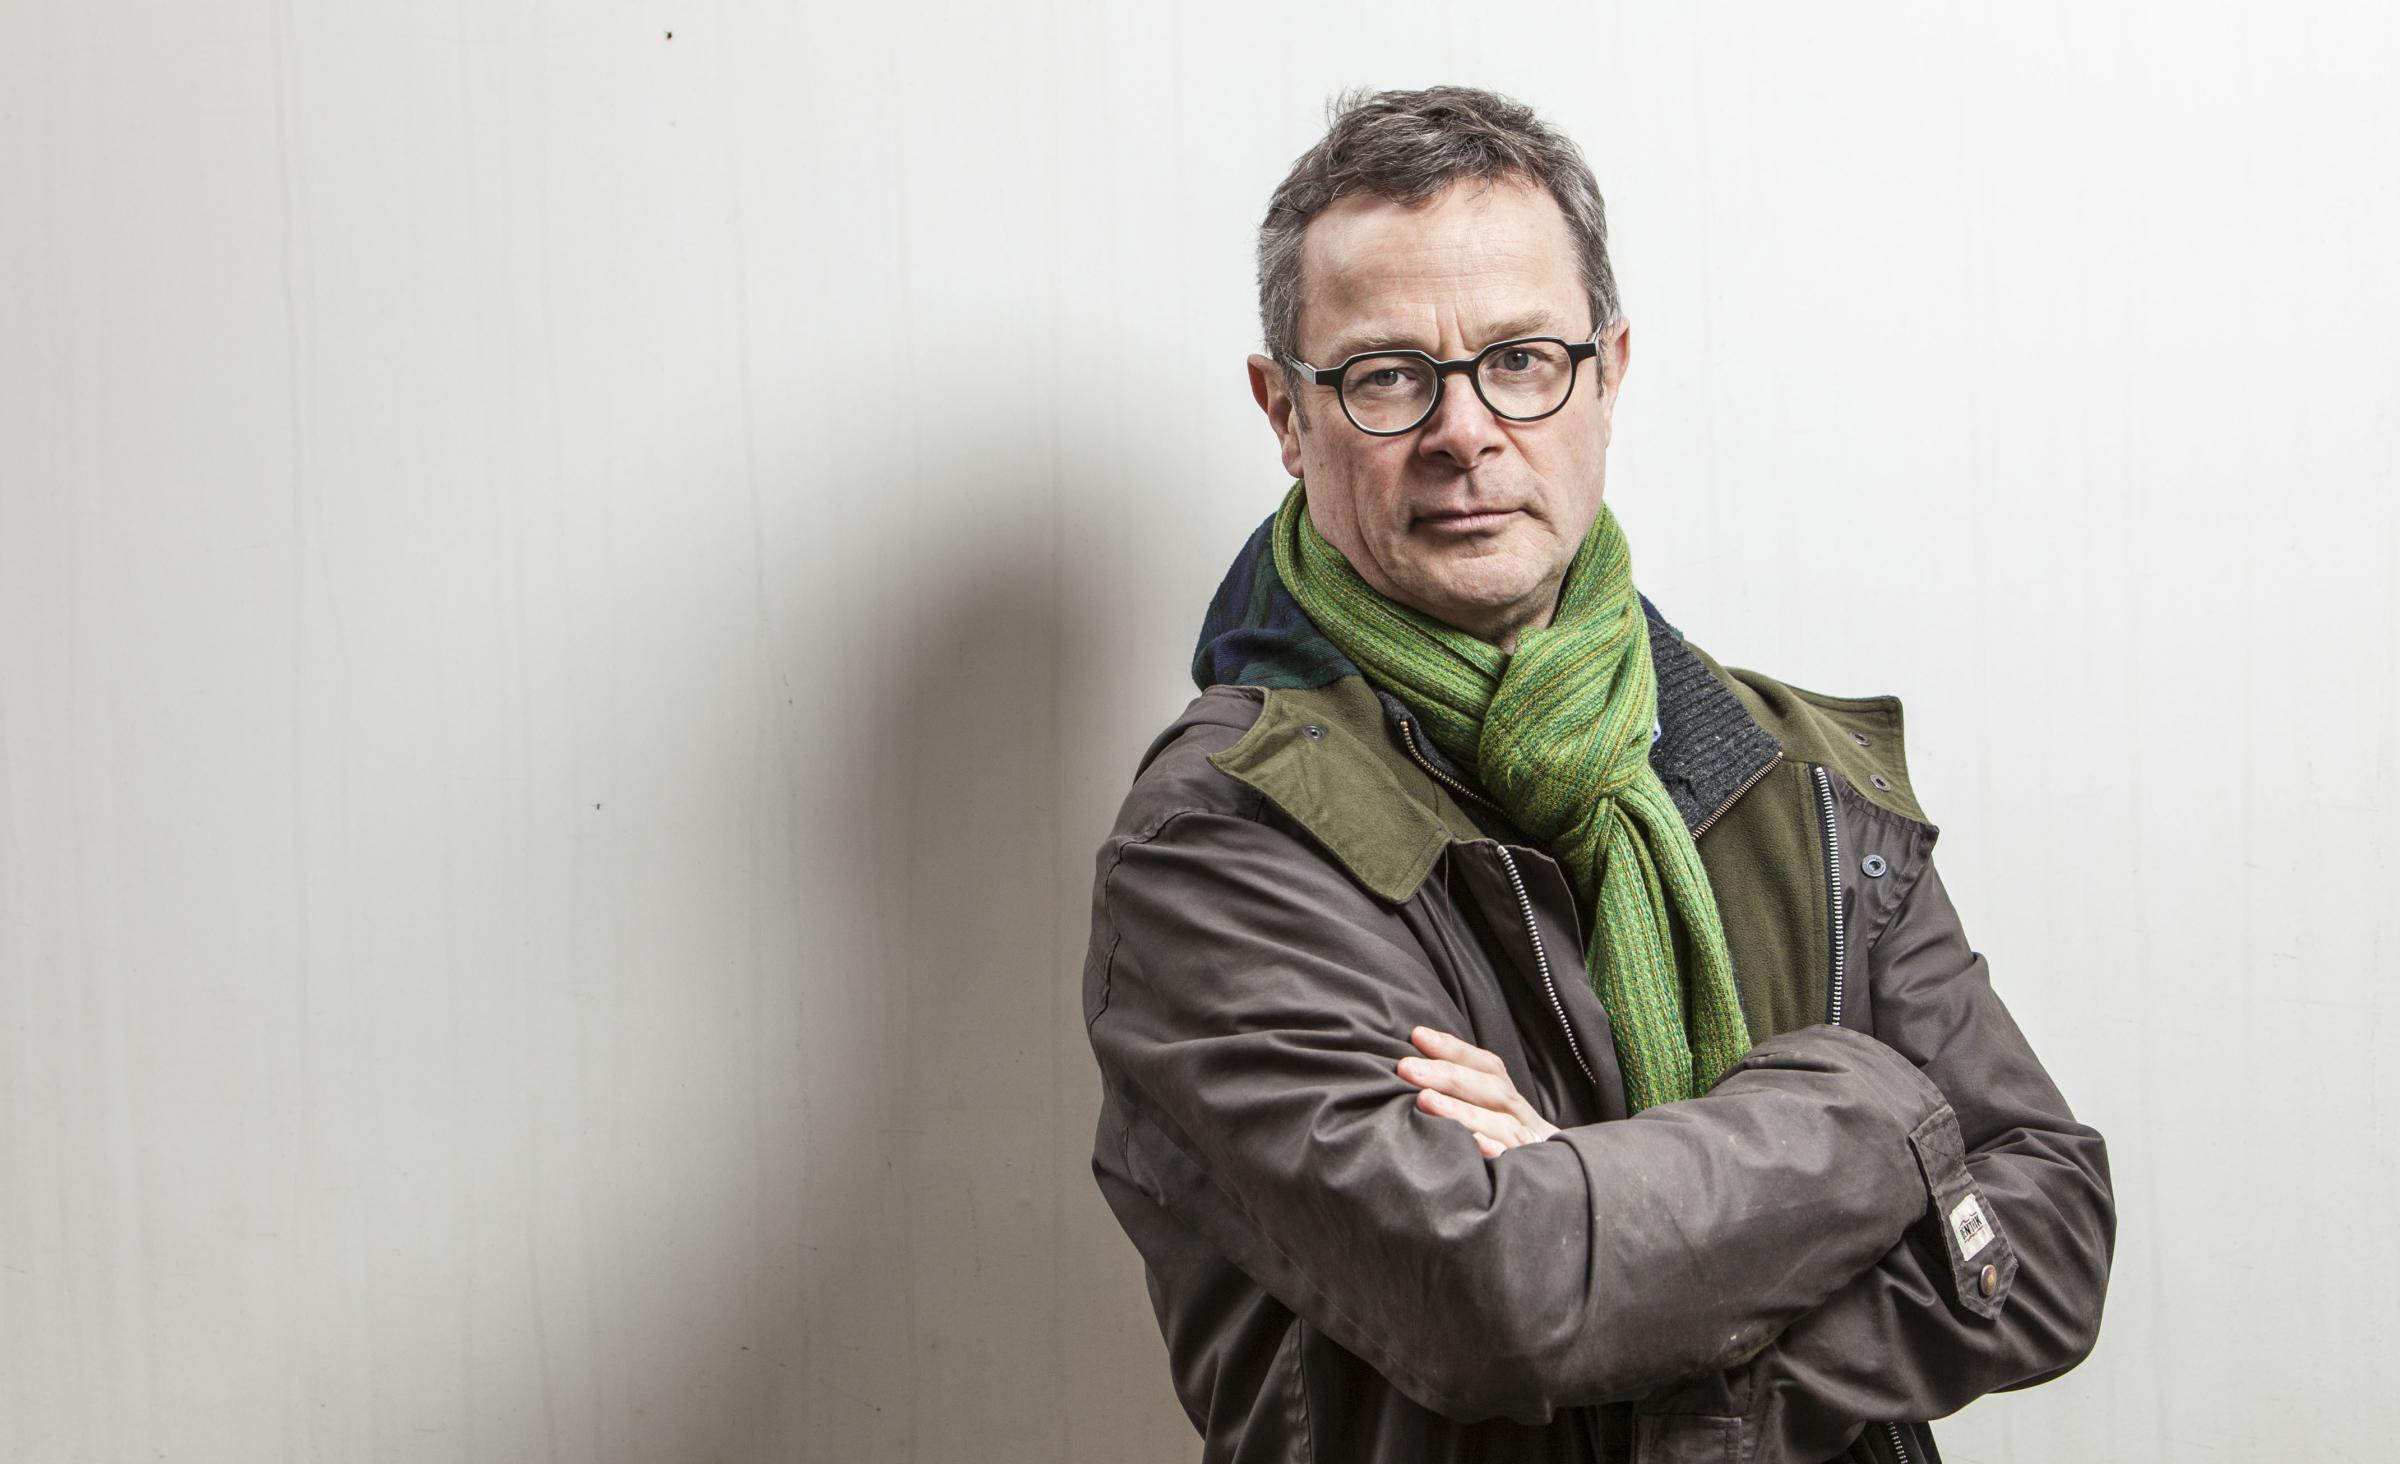 Frustrated: Hugh Fearnley-Whittingstall. Photograph: PA/BBC